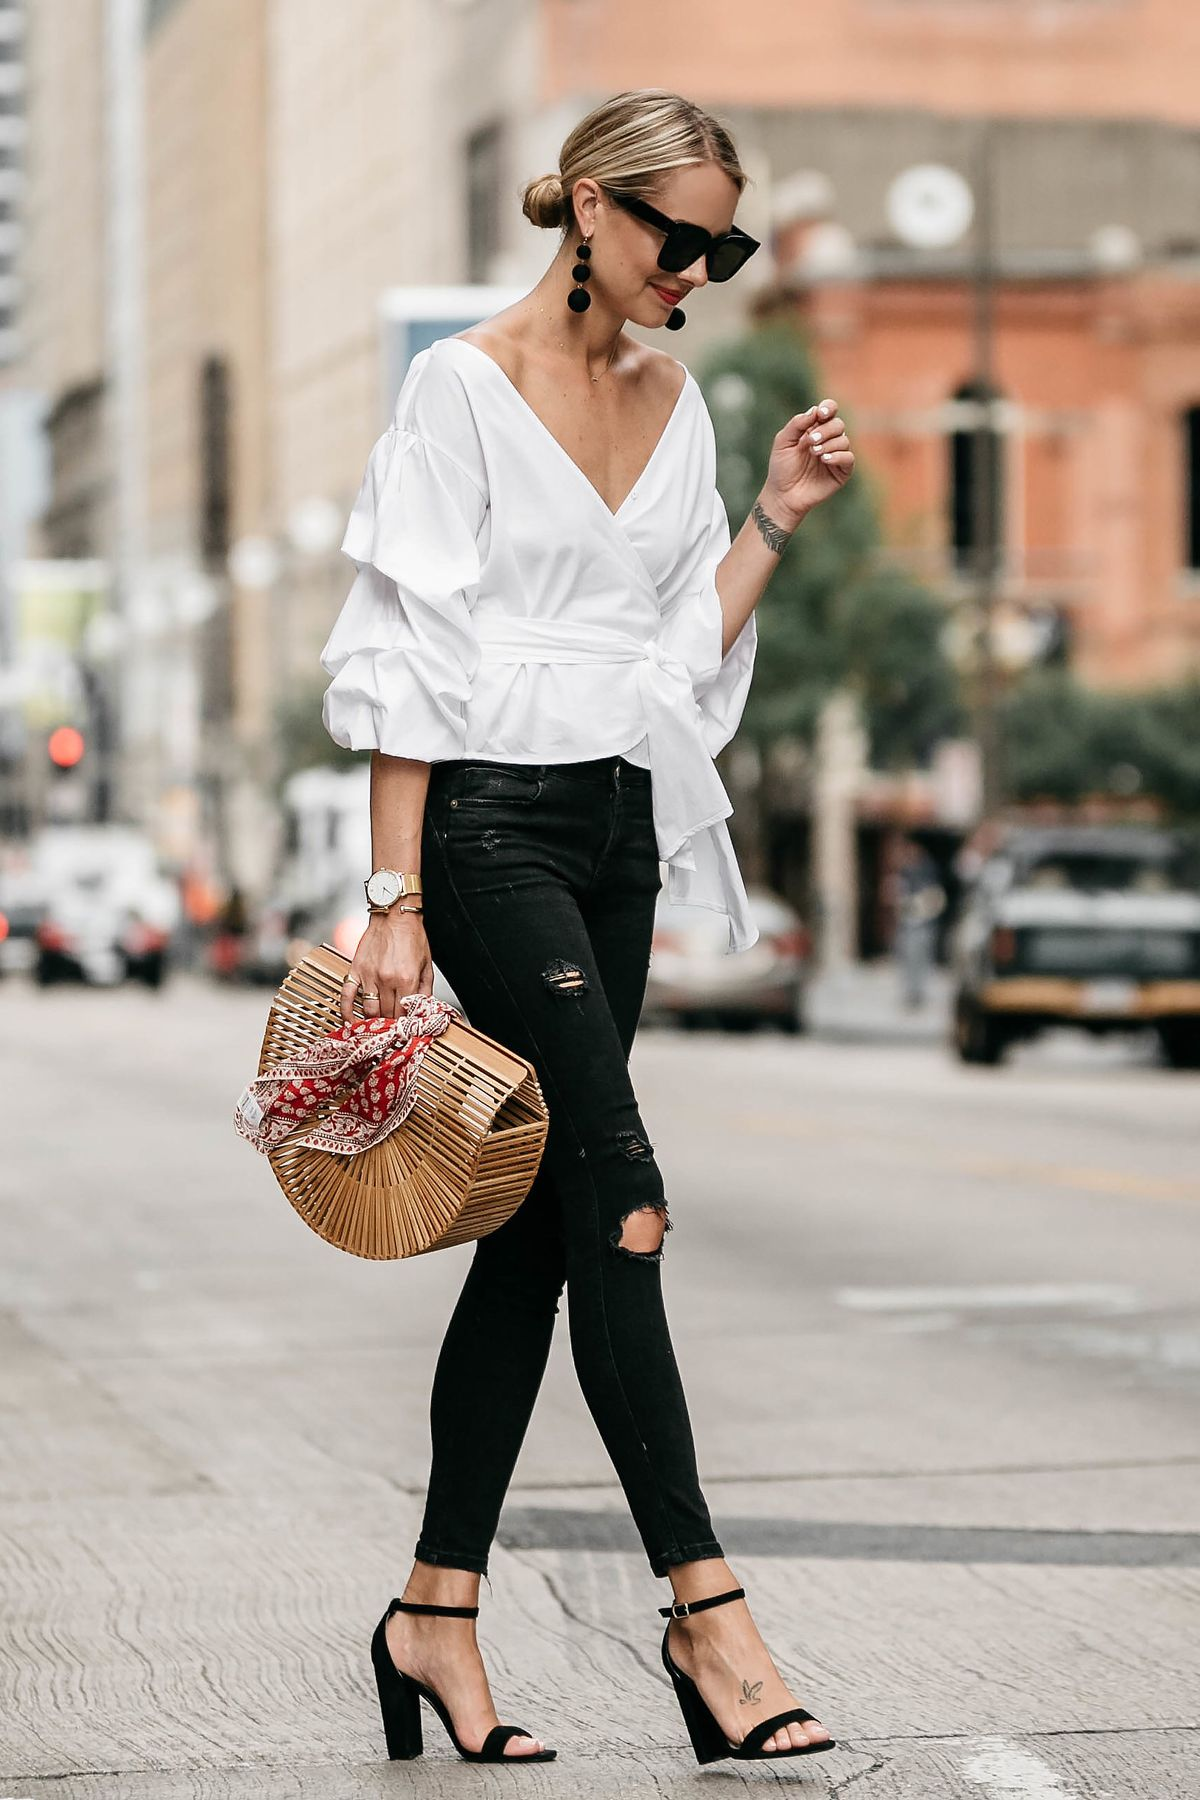 Last year, wrap blouses appeared in a new version. The top looks more stylish due to the statement sleeves and bow that ties at the waist. There couldn't be another result other than it becoming a trend.